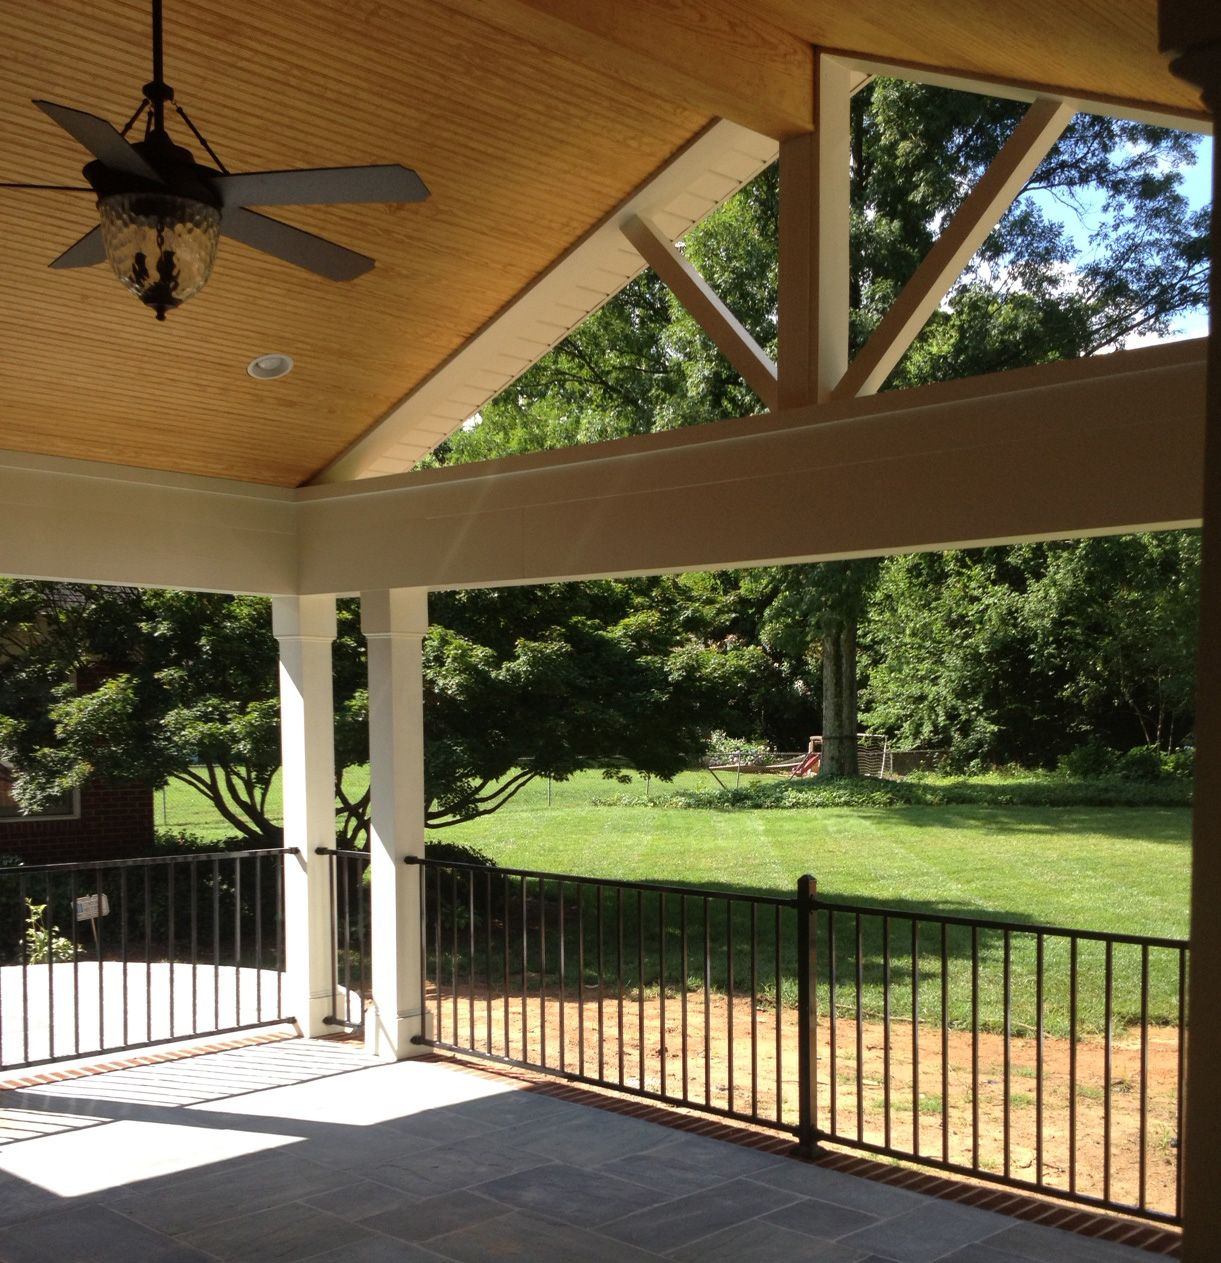 Pergola Ceiling Designs: Raleigh Covered Porch With Cathedral Ceiling